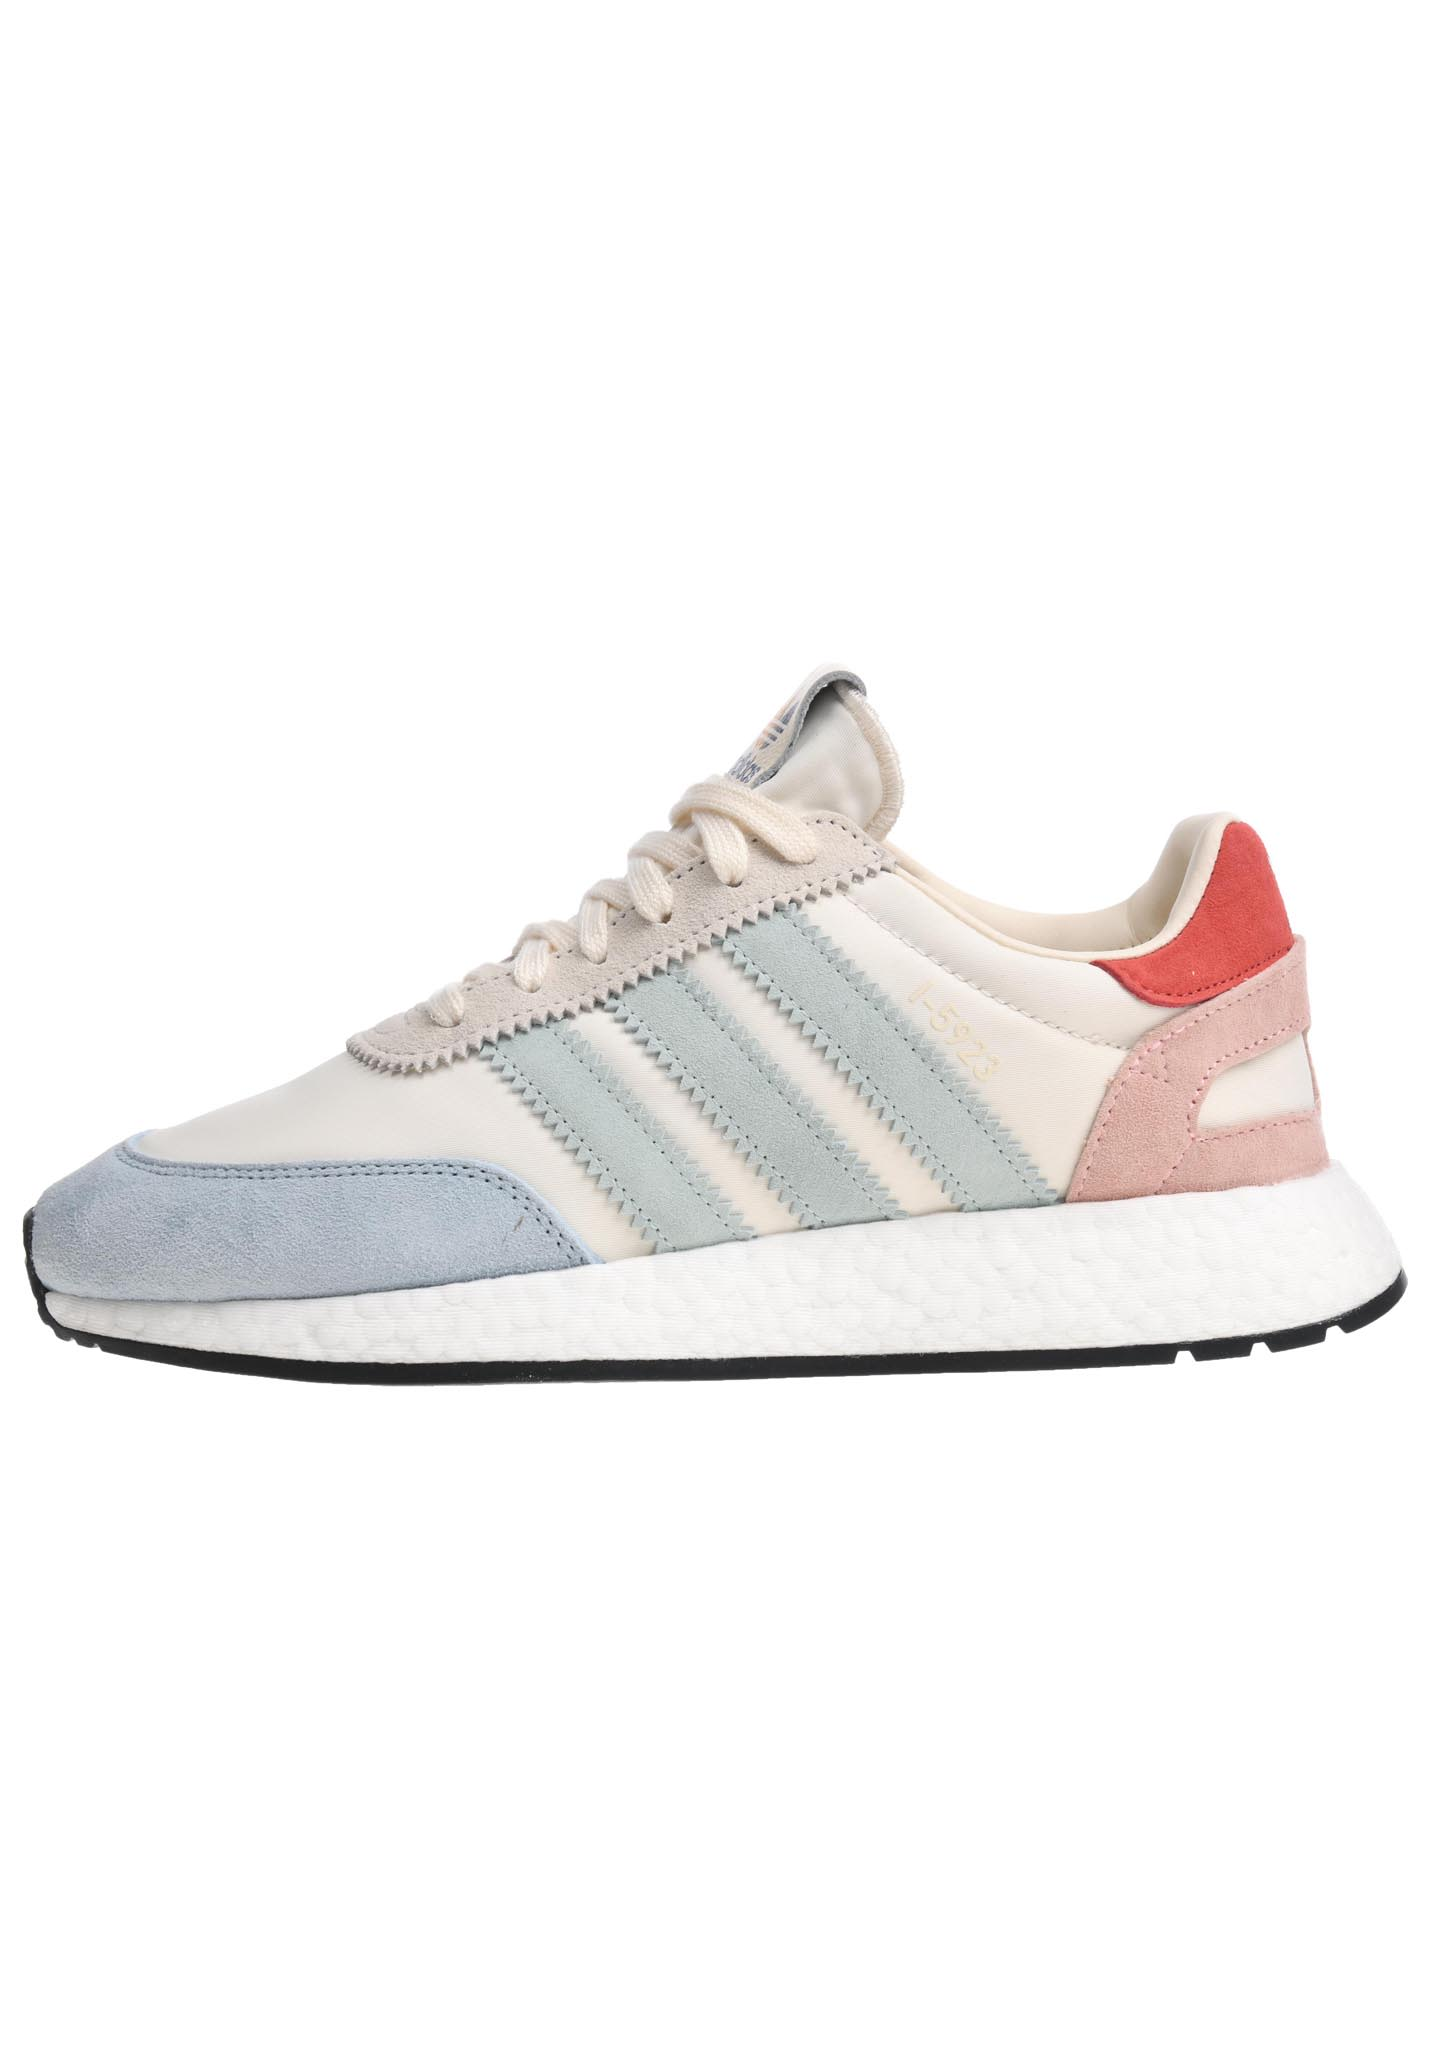 the latest c6854 23fdc ADIDAS ORIGINALS I-5923 Pride - Sneakers for Men - Beige - Planet Sports